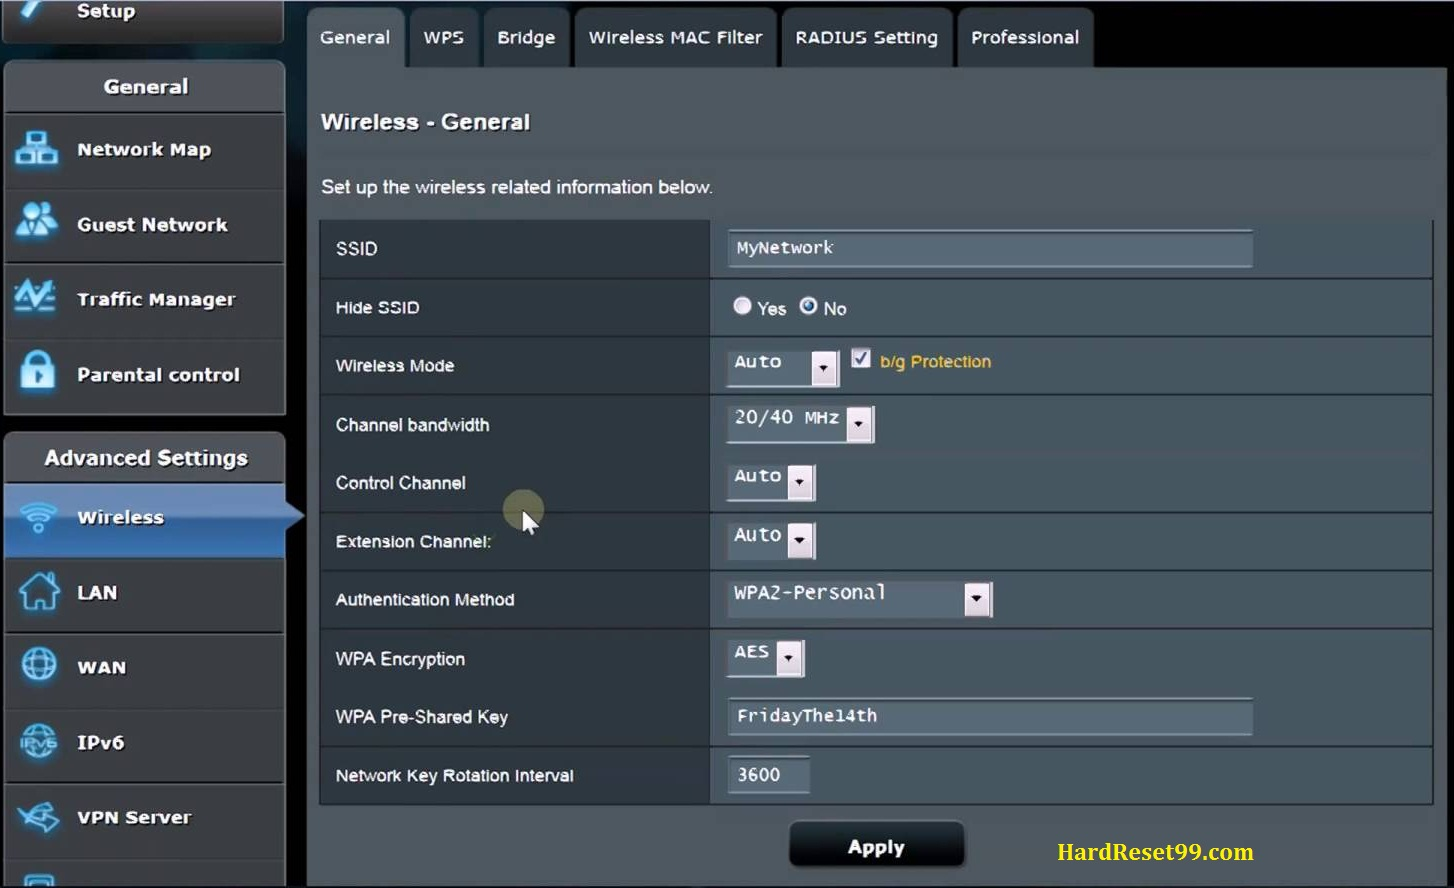 Asus RT-N66U Router - How To Reset To Factory Defaults Settings